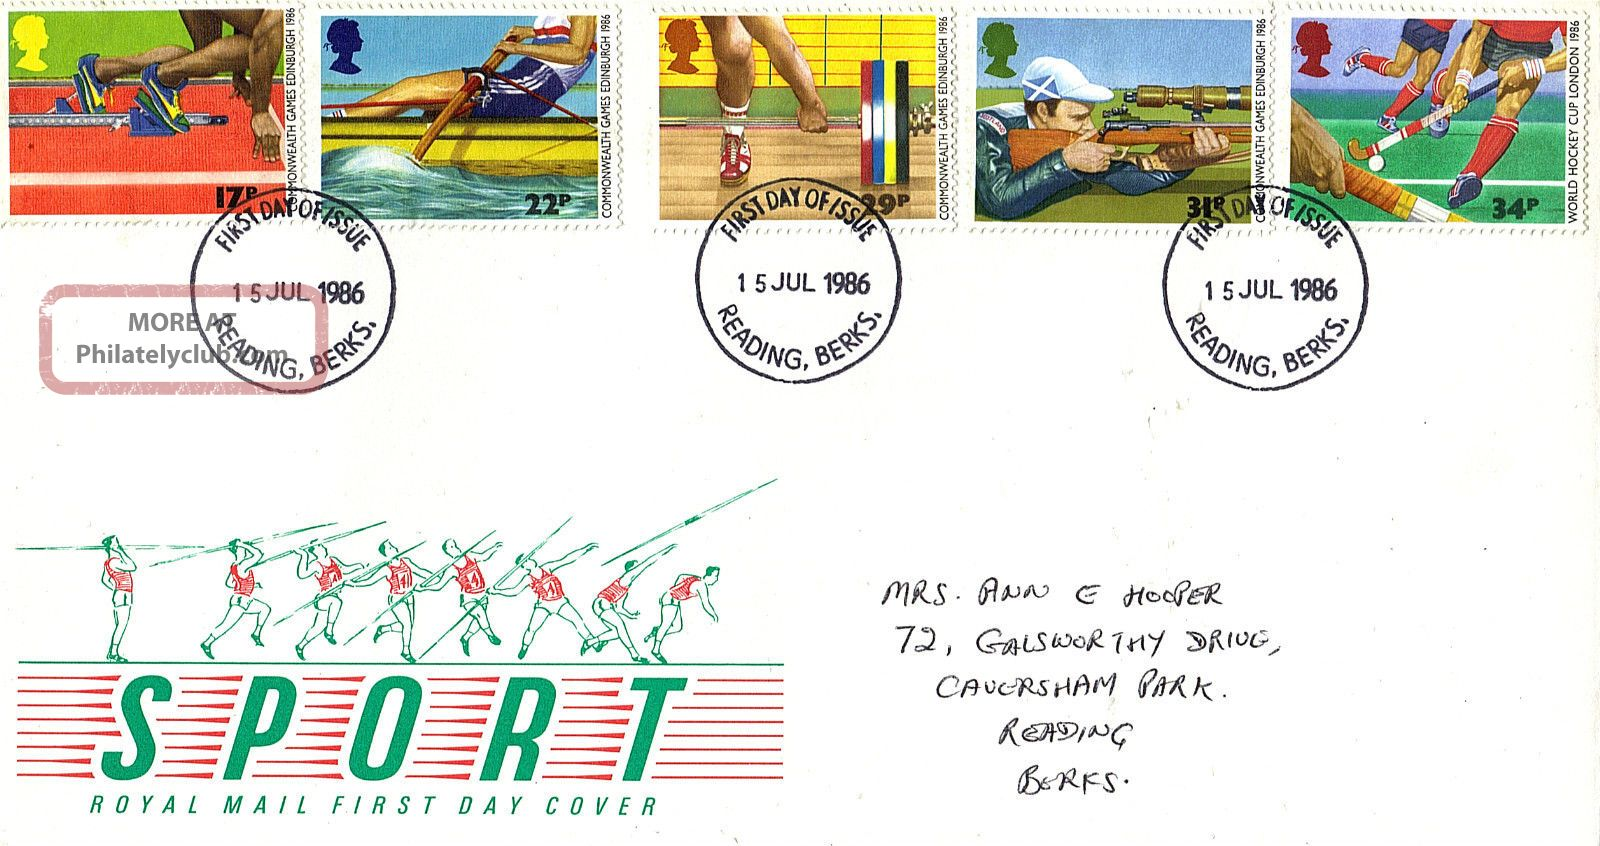 15 July 1986 Commonwealth Games Royal Mail First Day Cover Reading Berks Fdi Topical Stamps photo